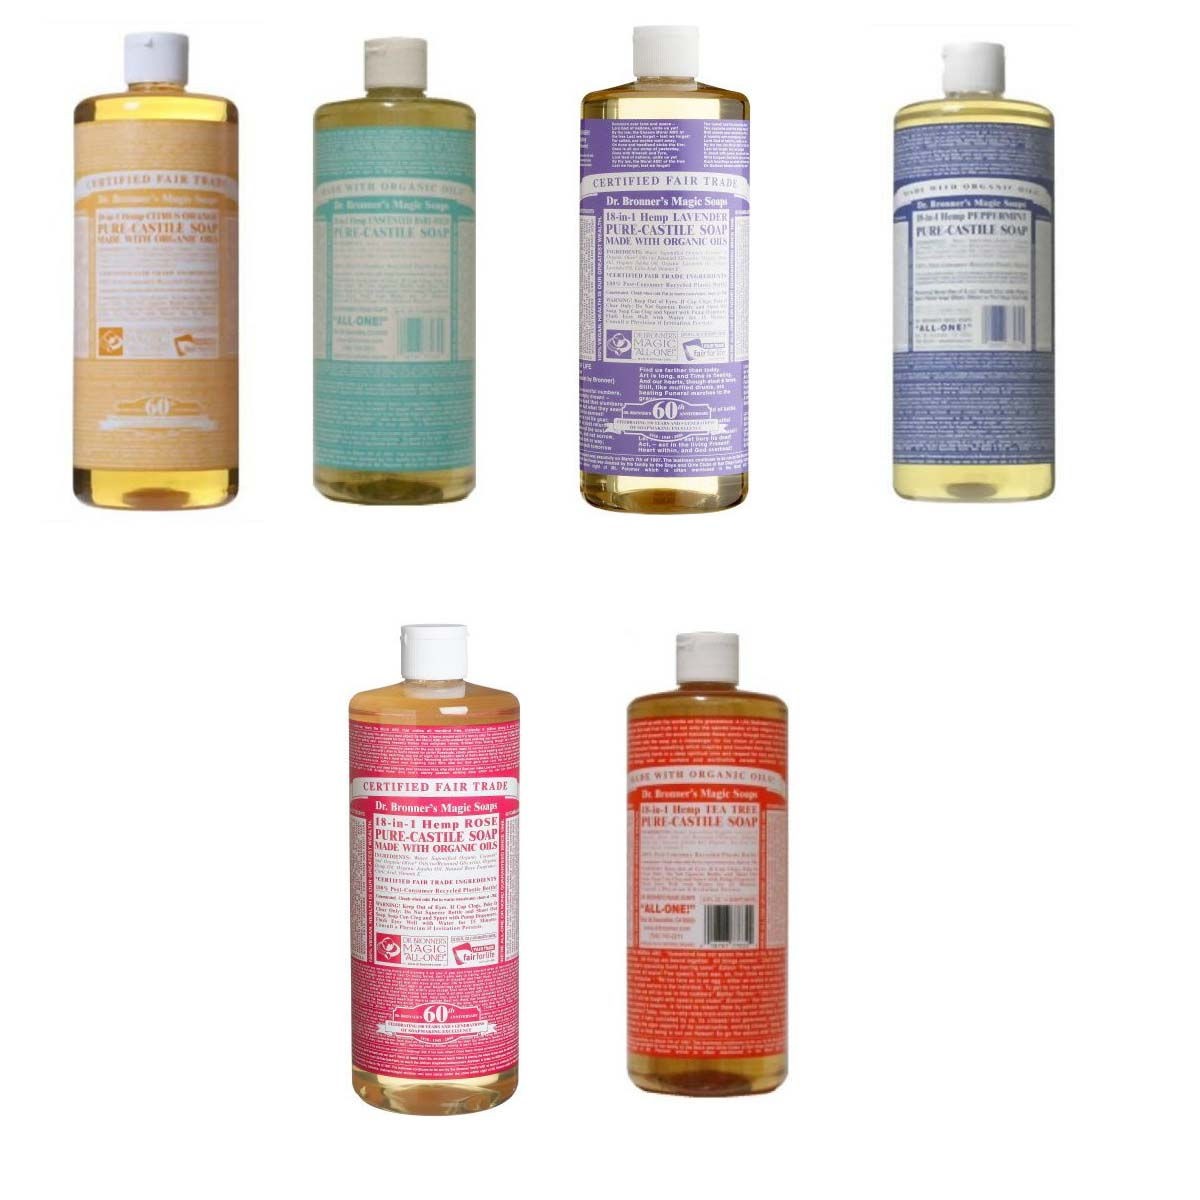 Ml(organic liquid soap 472 ml fs3gm